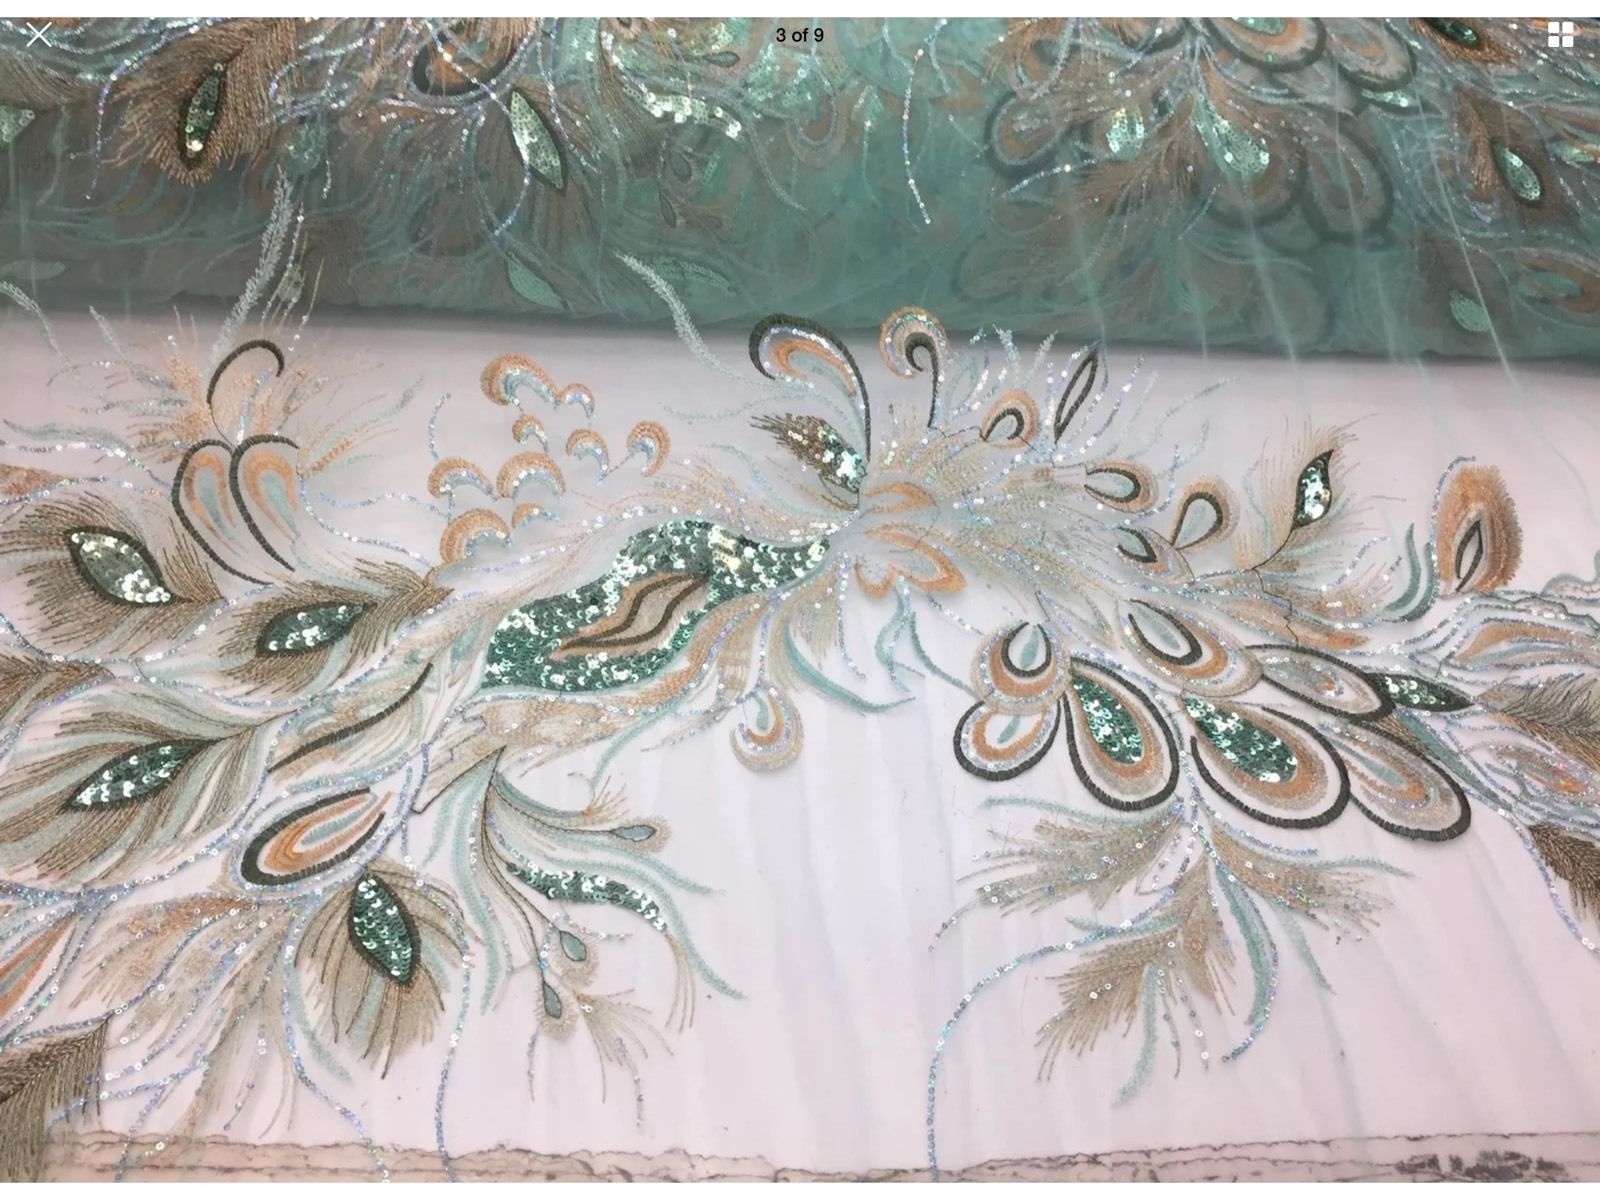 Peacock Feathers Embroider With Sequins And Metallic Tread On a Mint Mesh Lace. - KINGDOM OF FABRICS